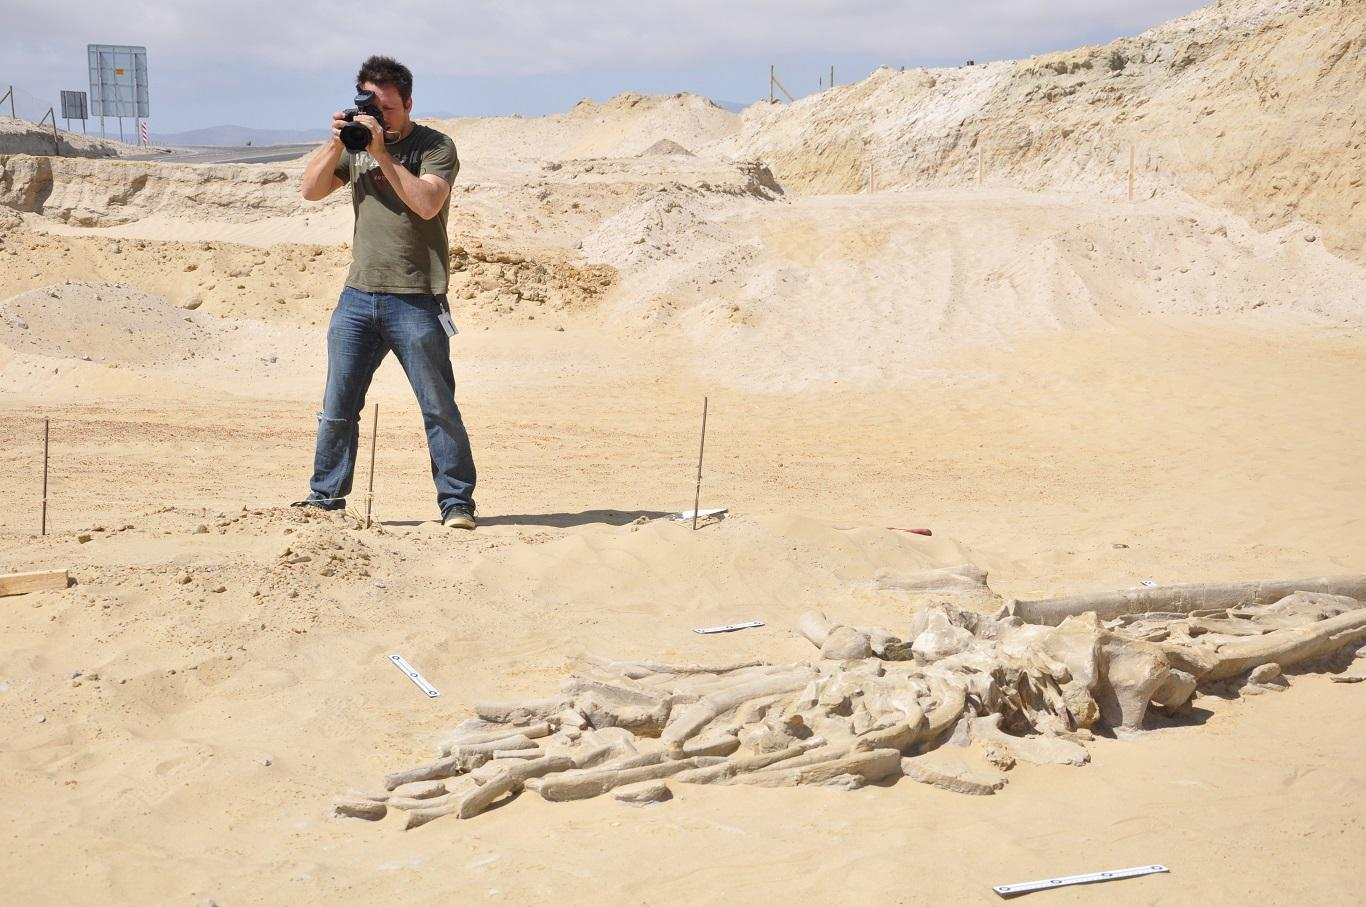 Photographer taking photos of fossils in desert